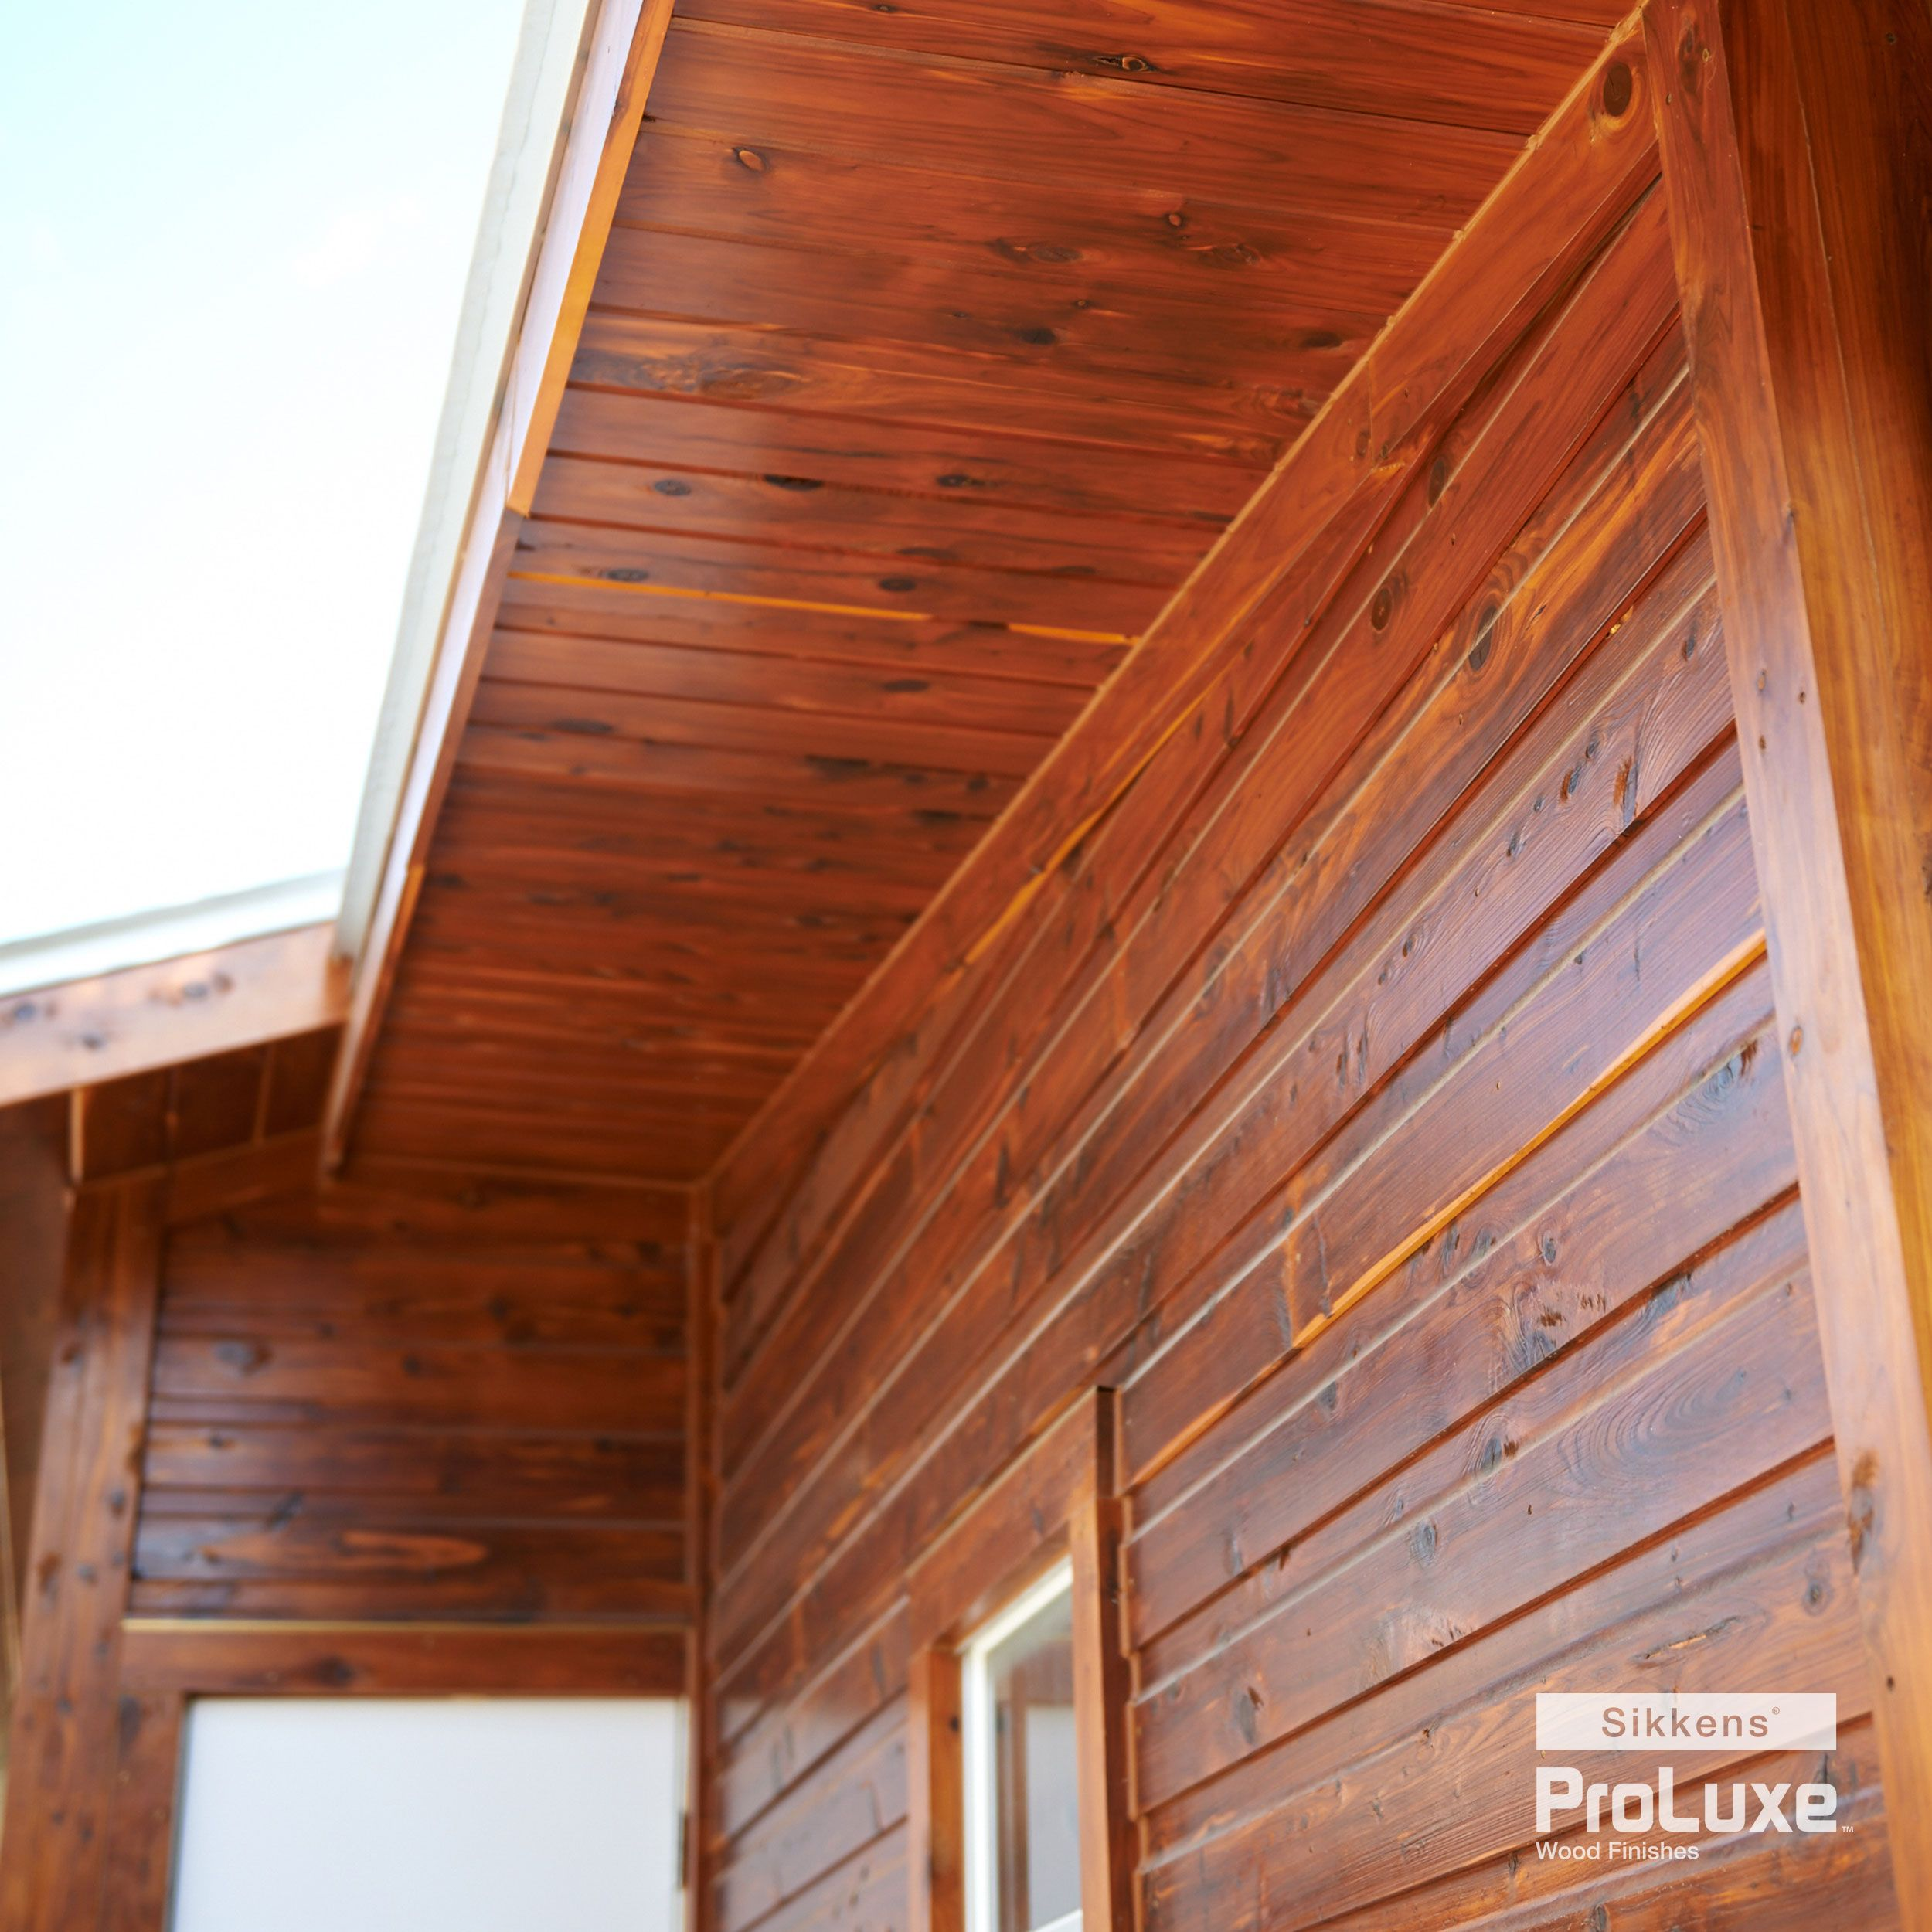 Featuring sikkens proluxe cetol srd in redwood log for How to stain log cabin